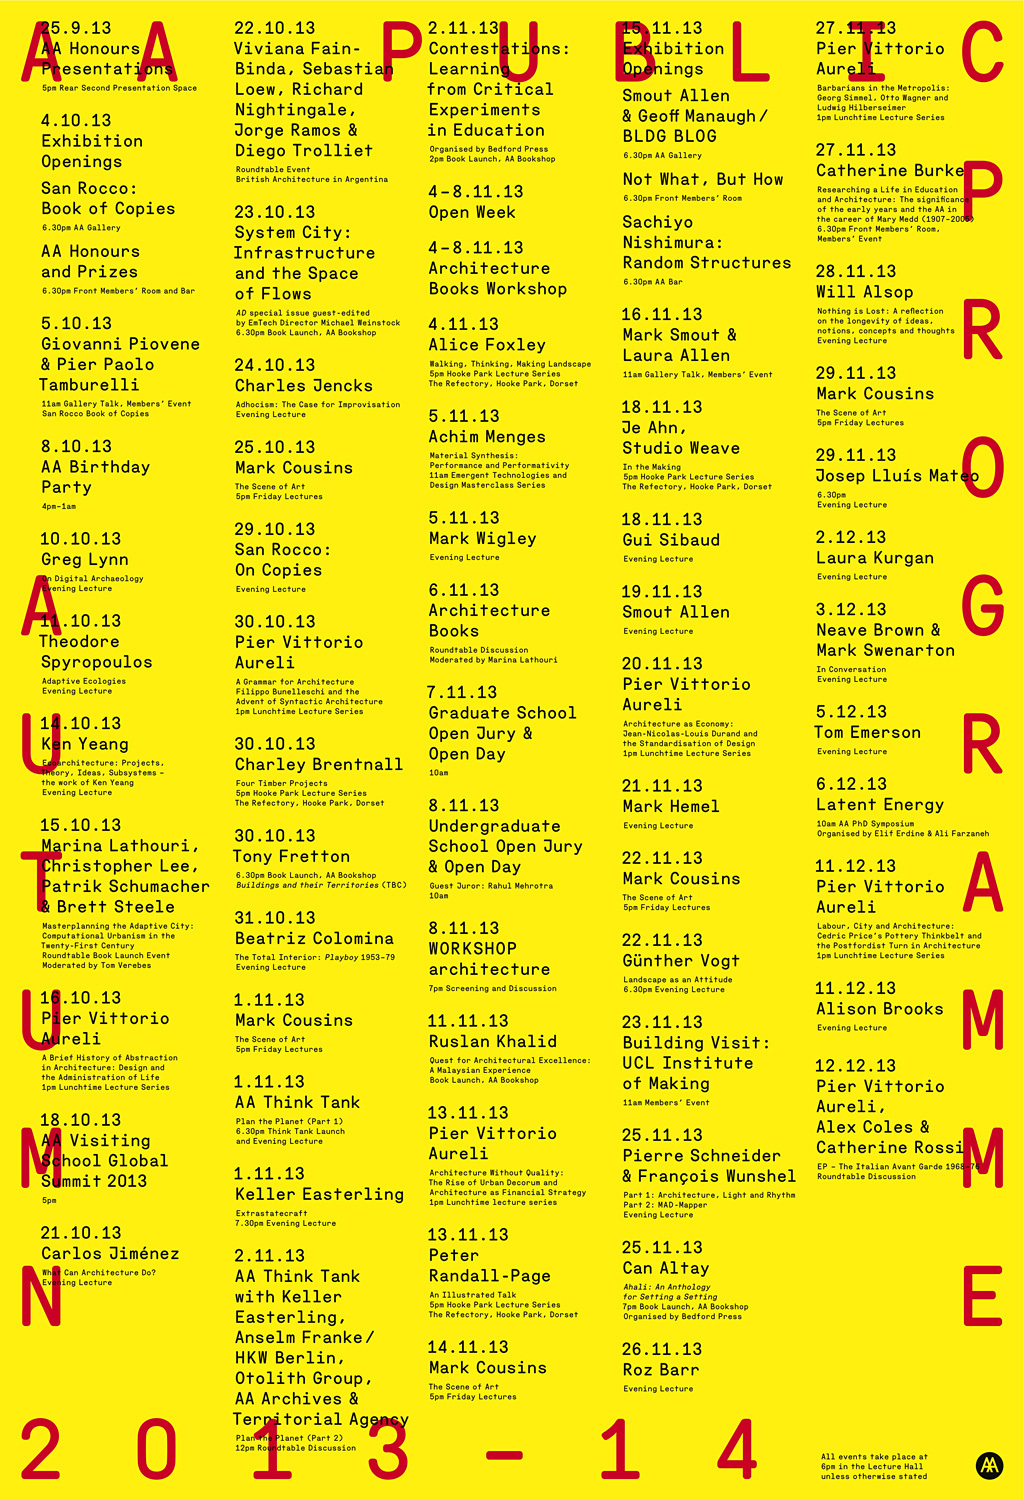 Poster for the Autumn 13 Public Program at the AA School of Architecture. Image courtesy of AA School of Architecture.